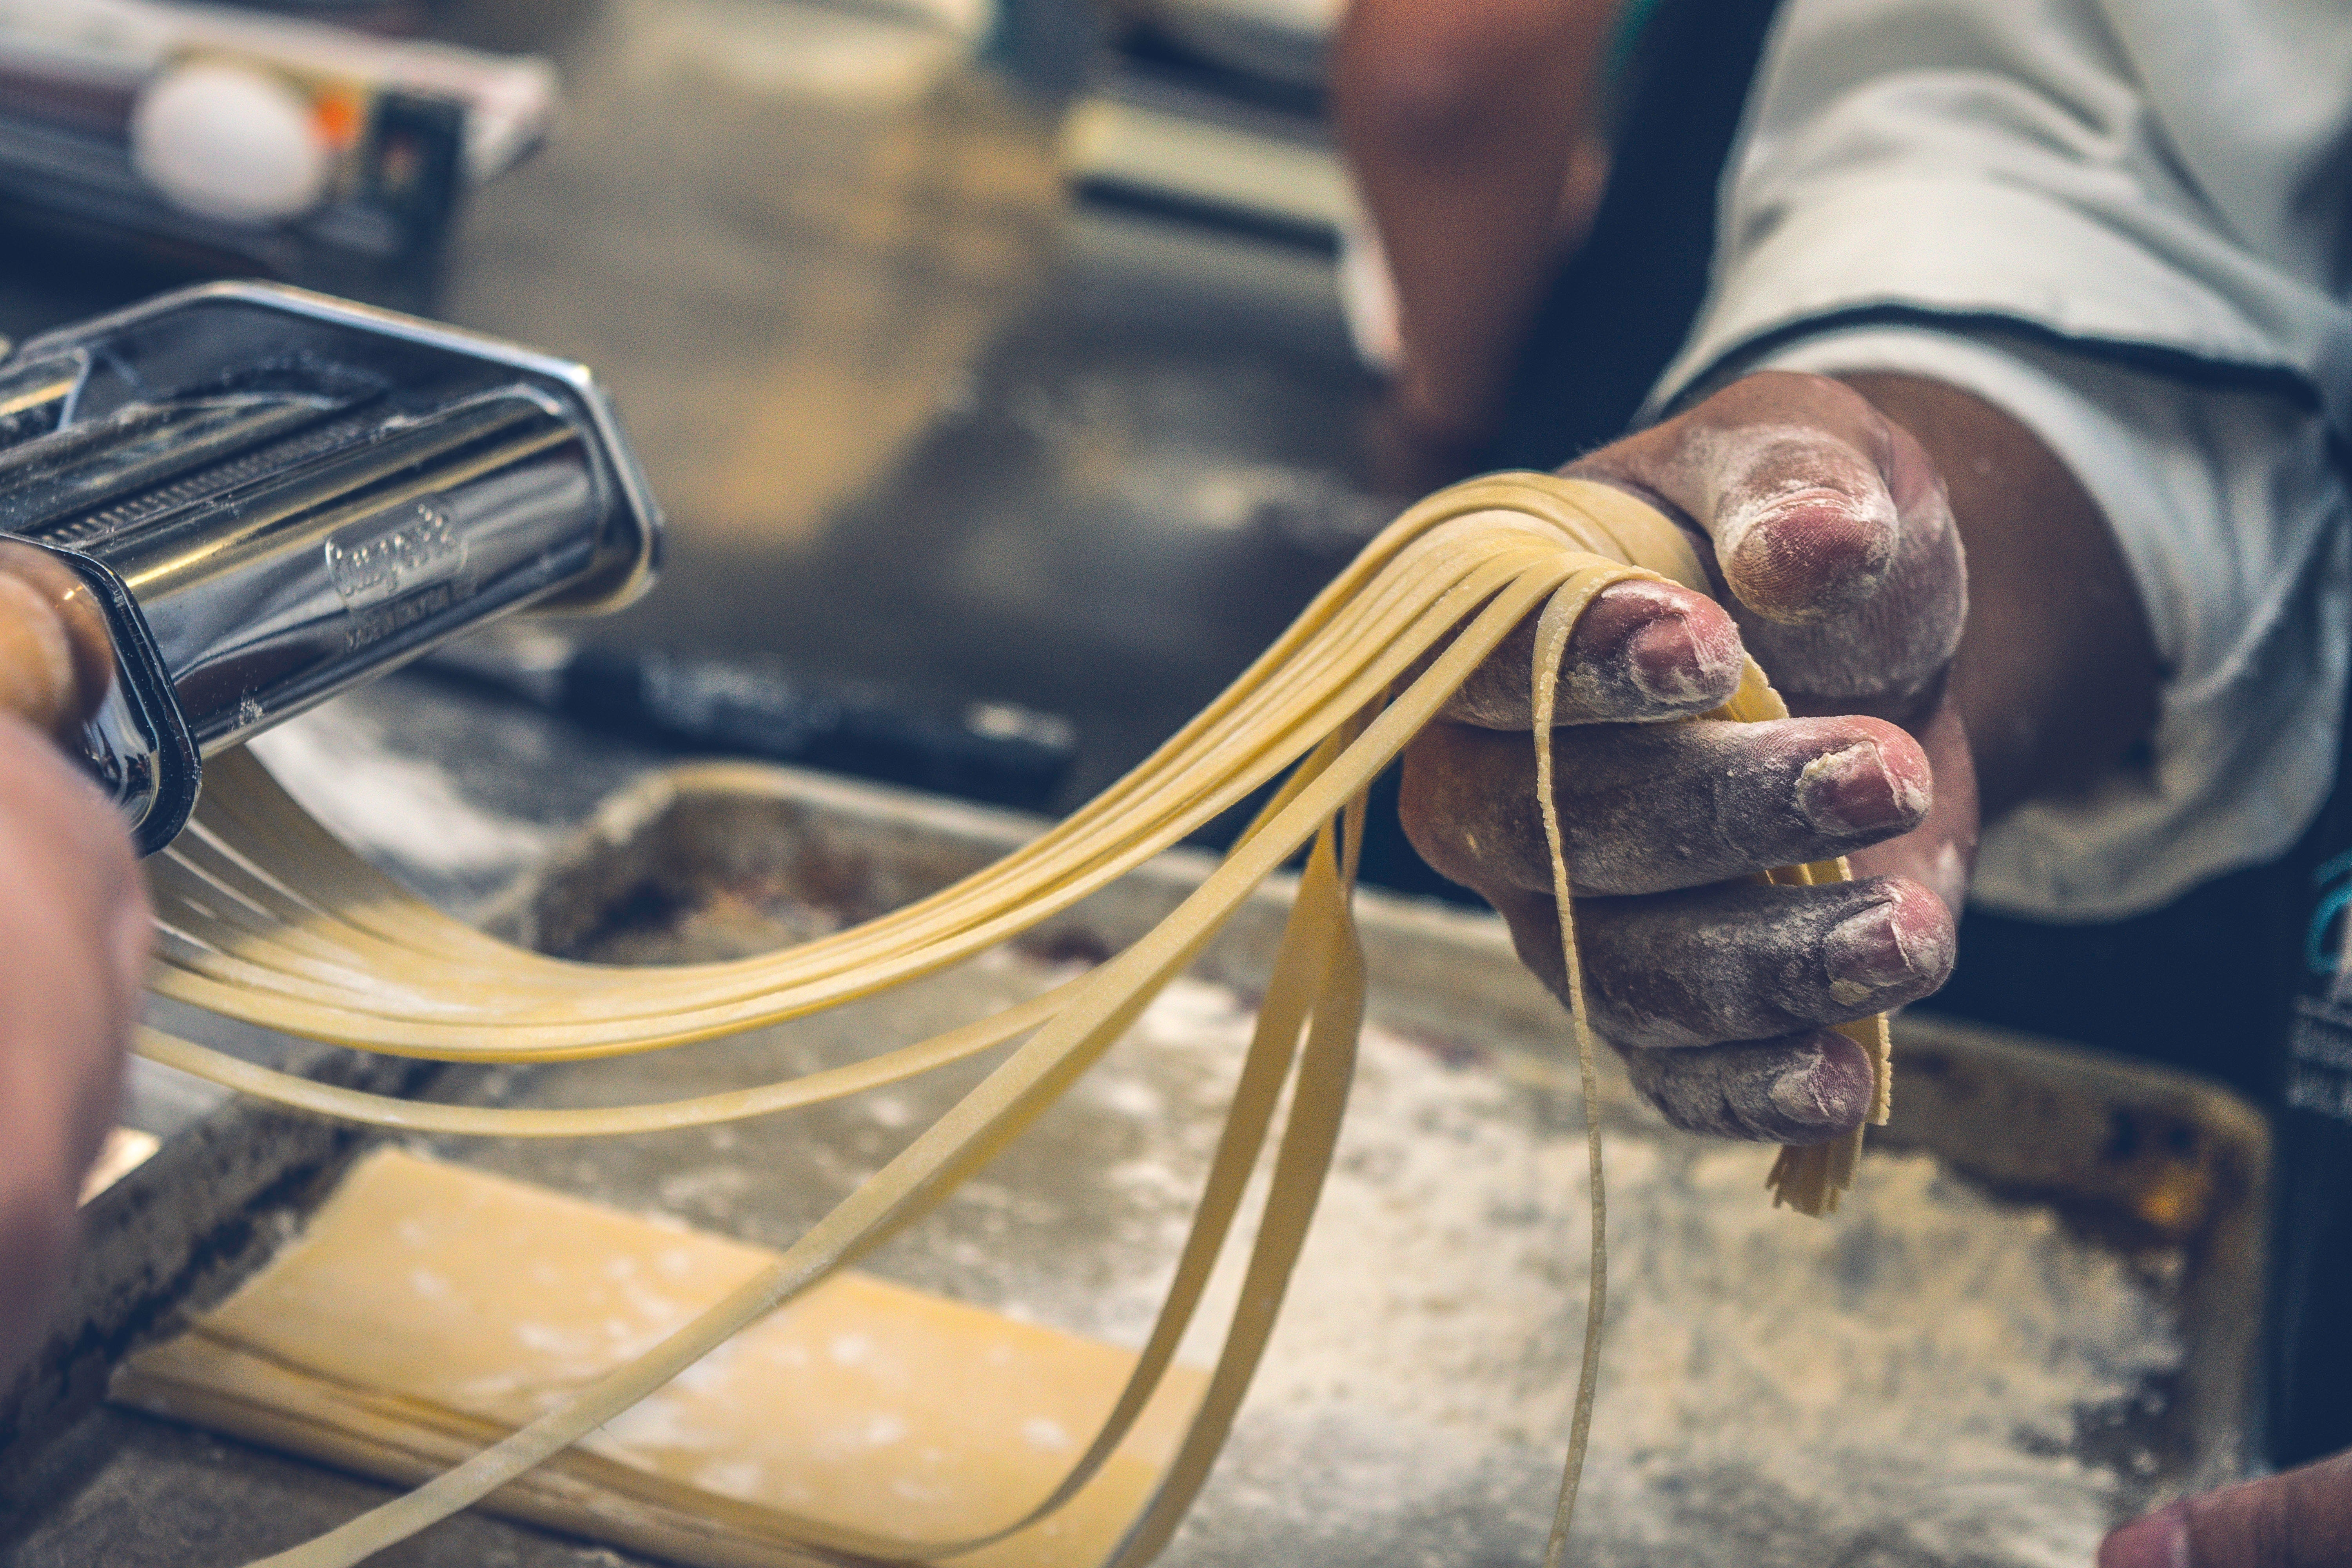 cooking-dough-fettuccine-1398688